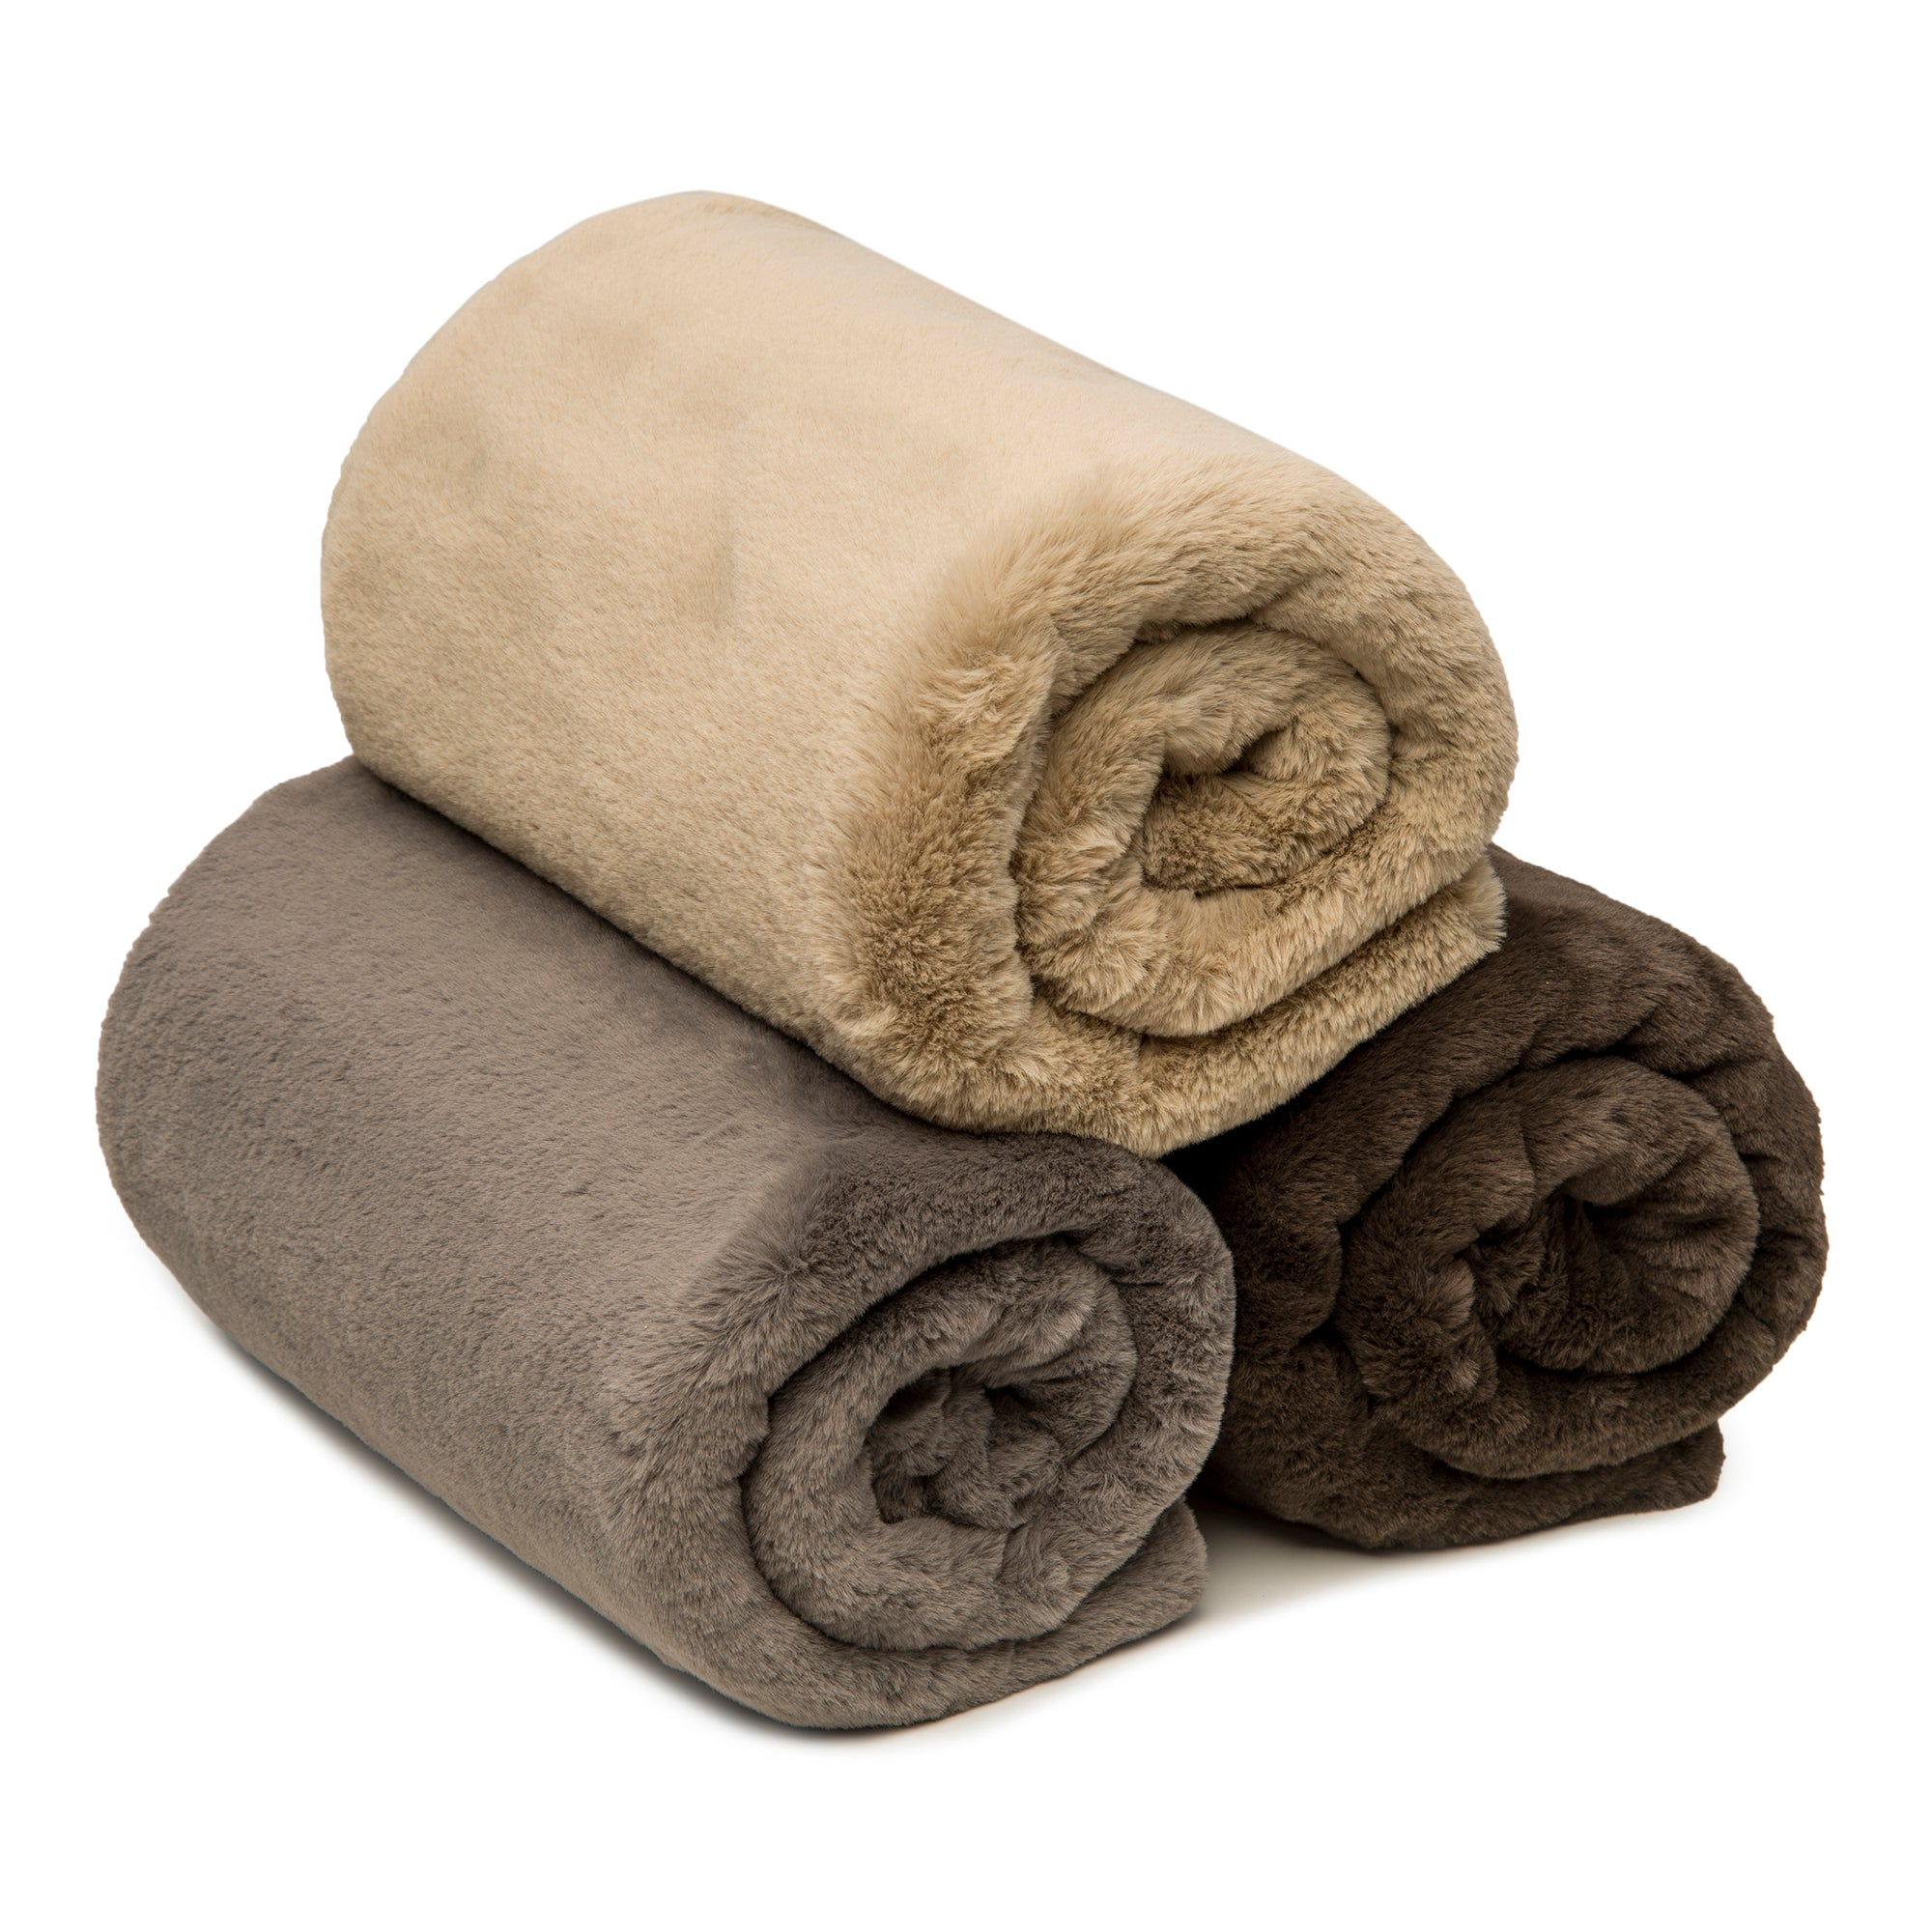 Dog Faux Mink Blanket - 2 Color Options